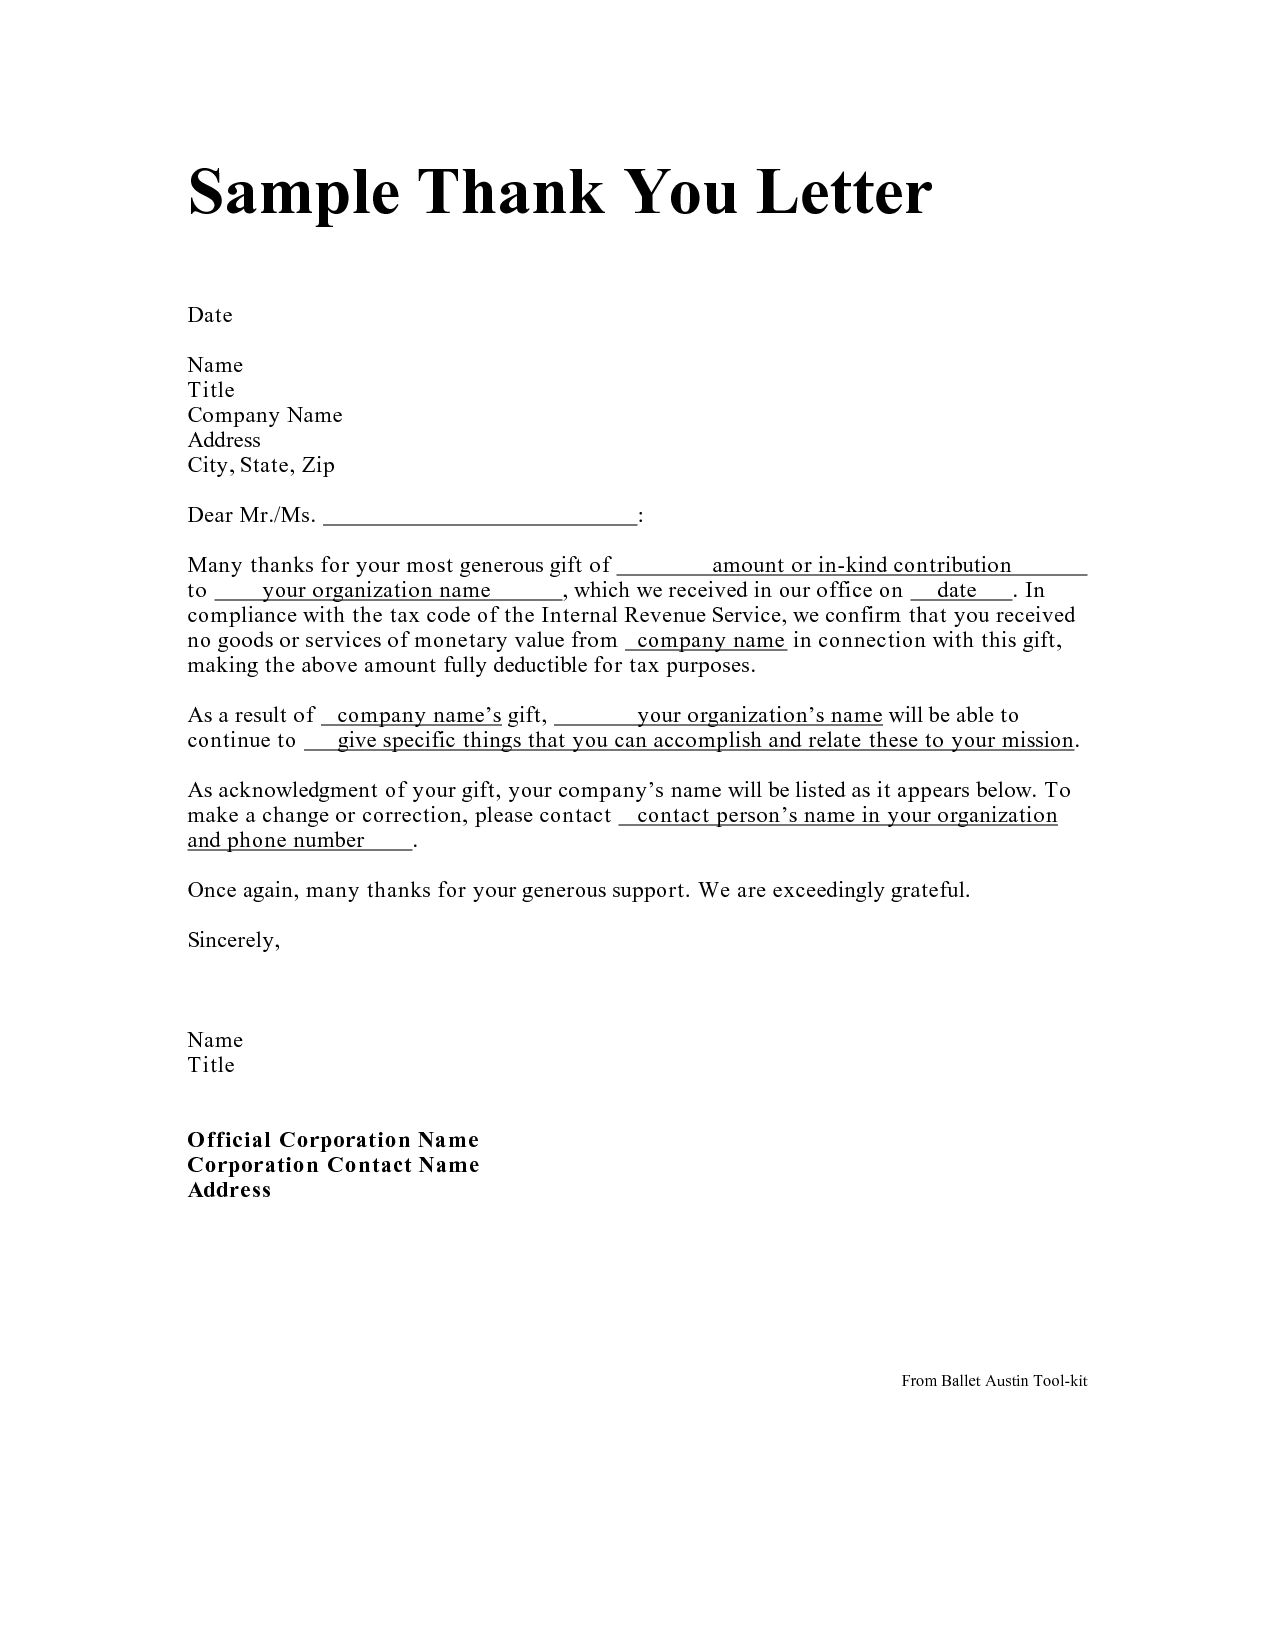 Personal thank you letter personal thank you letter samples personal thank you letter personal thank you letter samples writing thank you notes thank you note examples thecheapjerseys Gallery